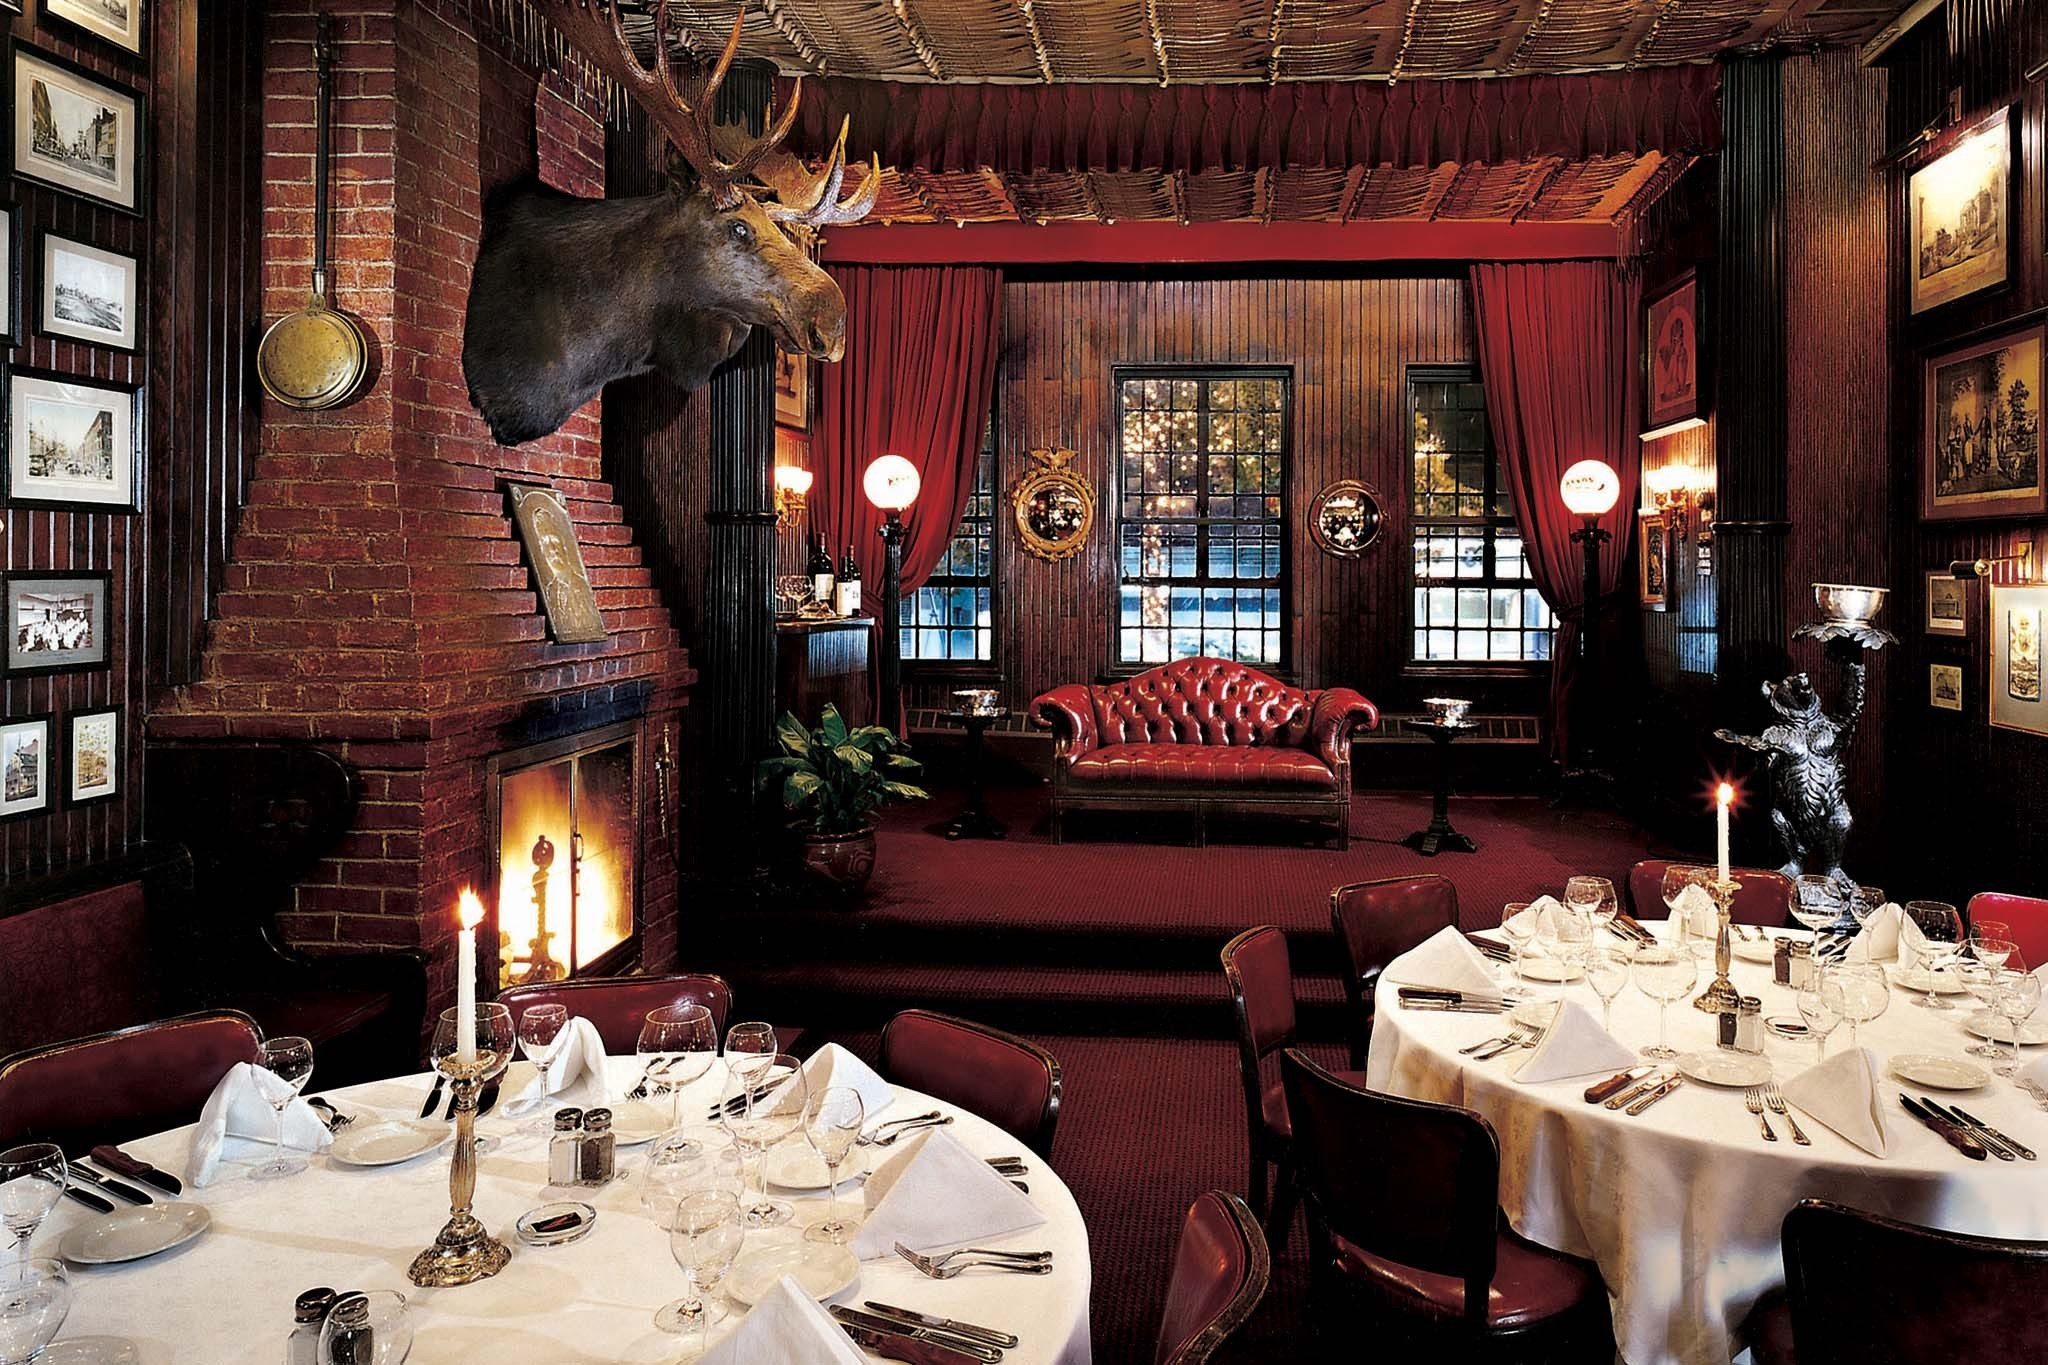 The best steak restaurants in New York